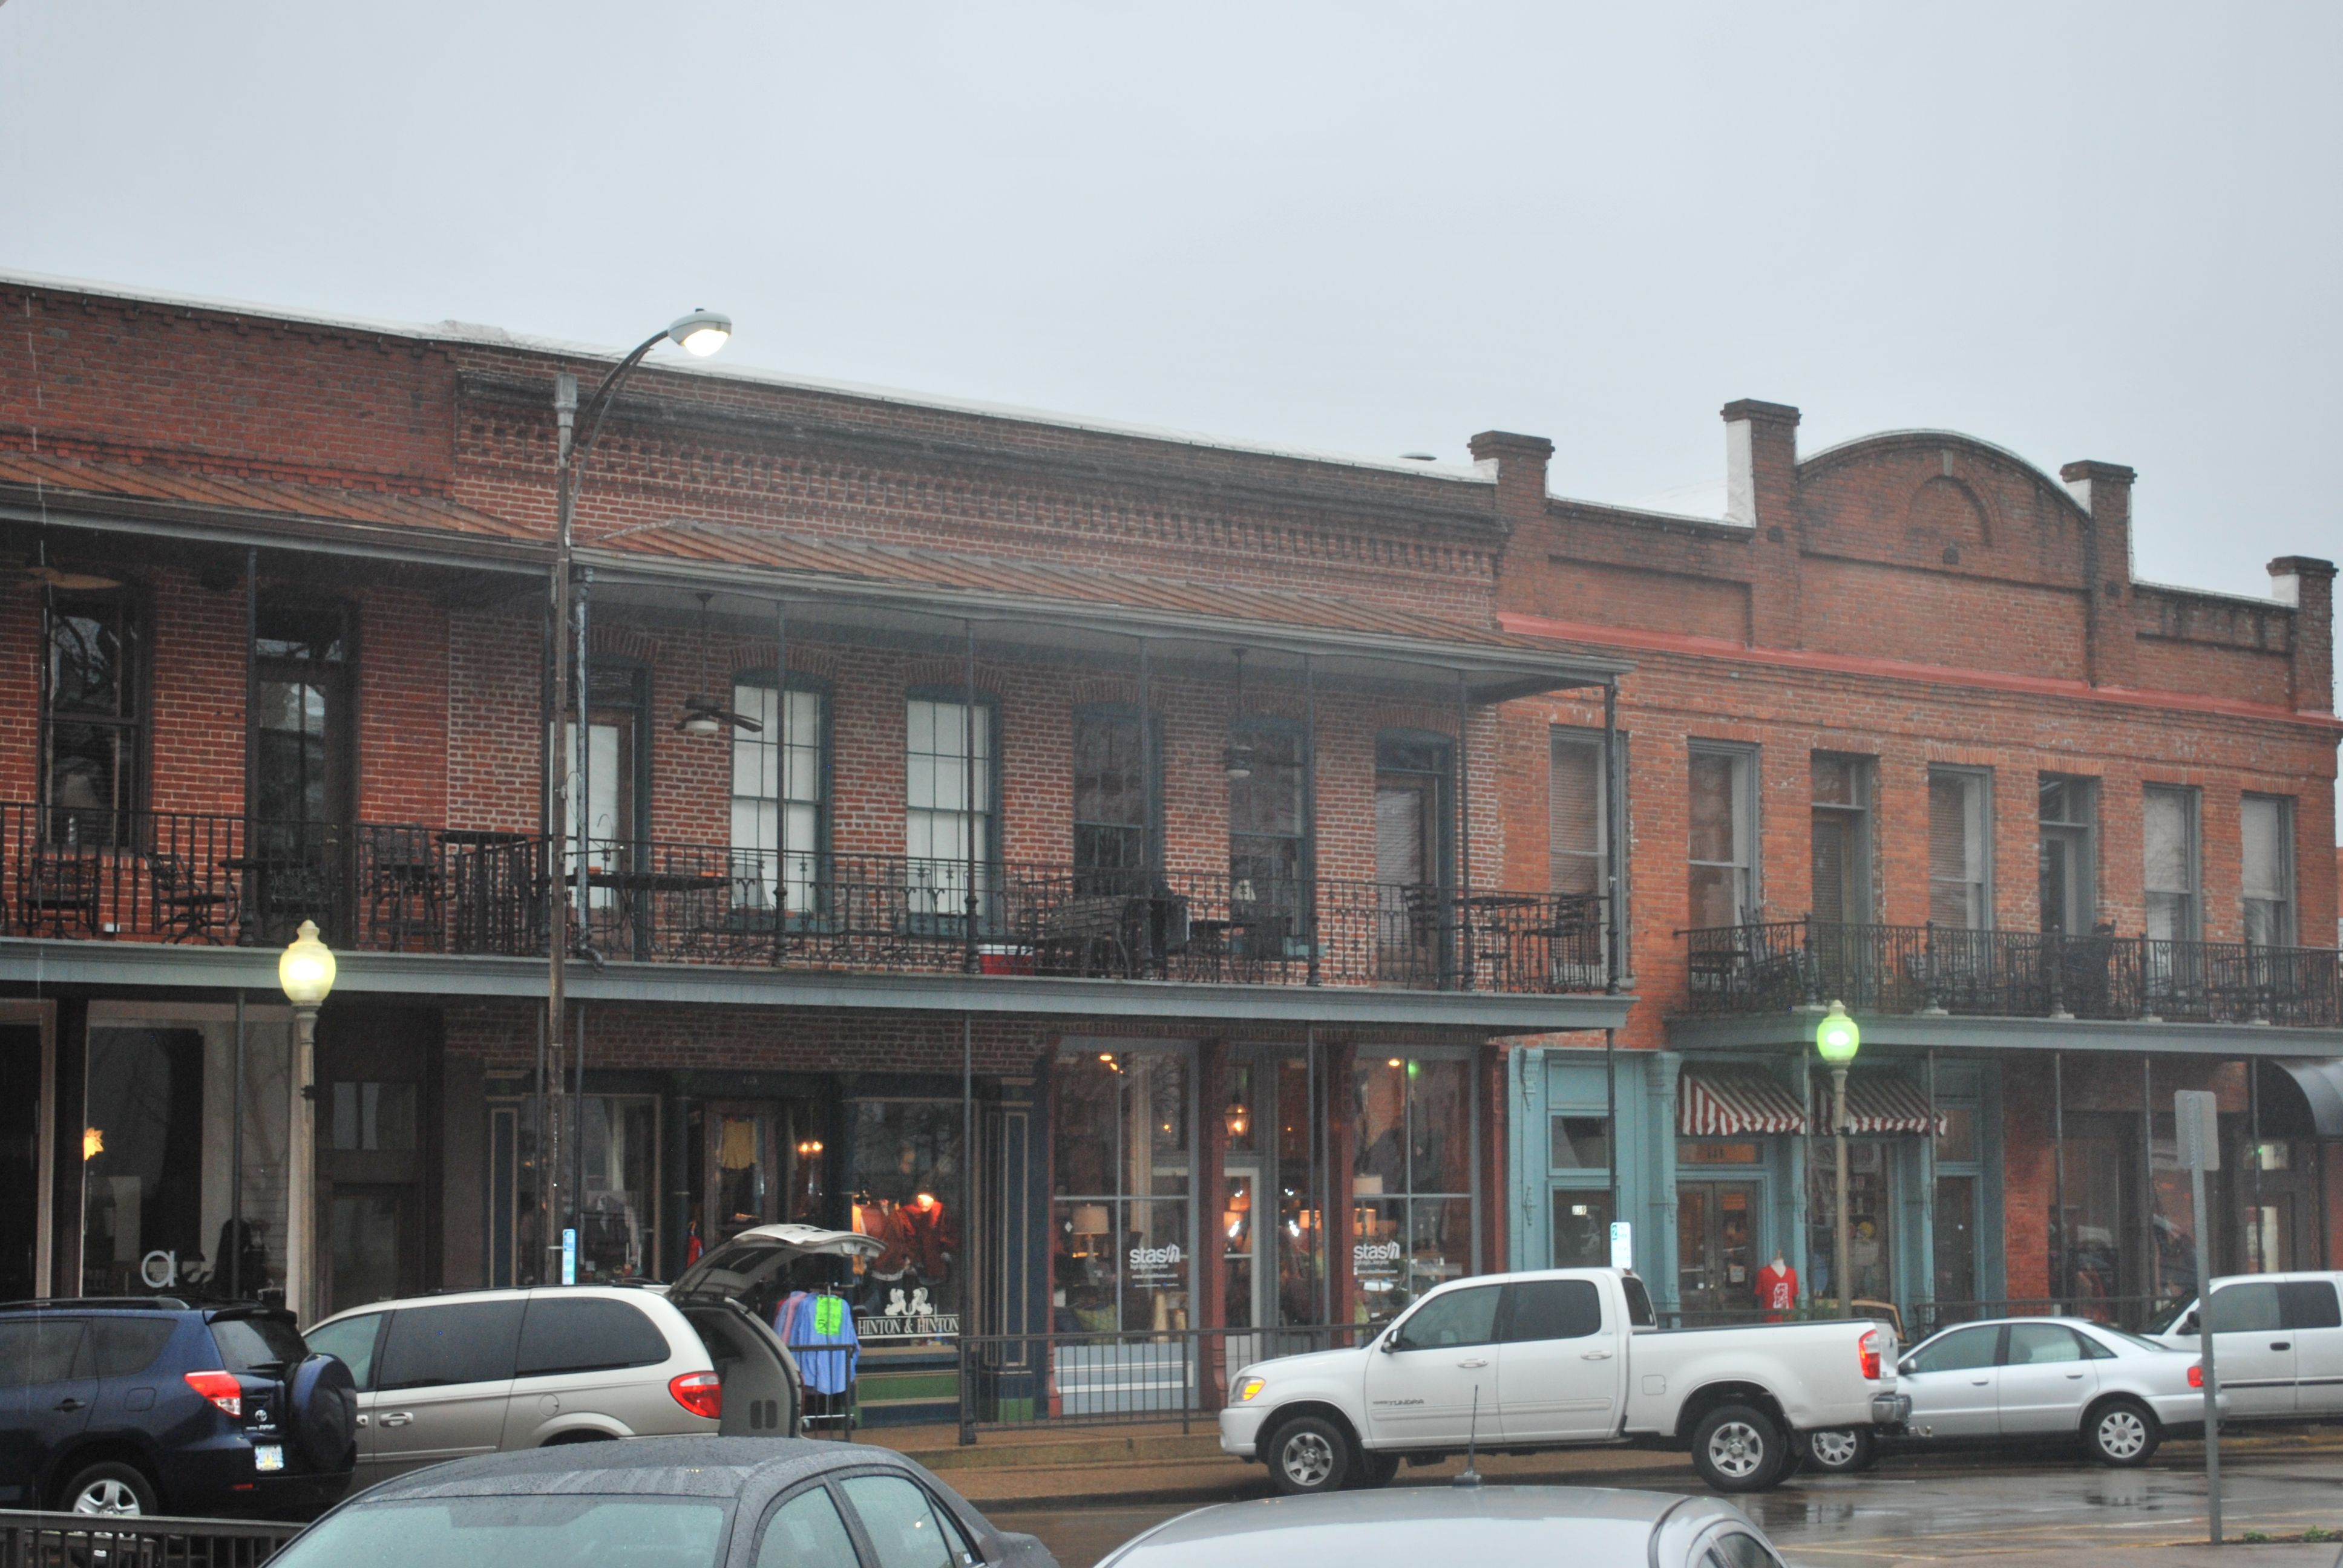 Downtown in oxford mississippi interesting architecture